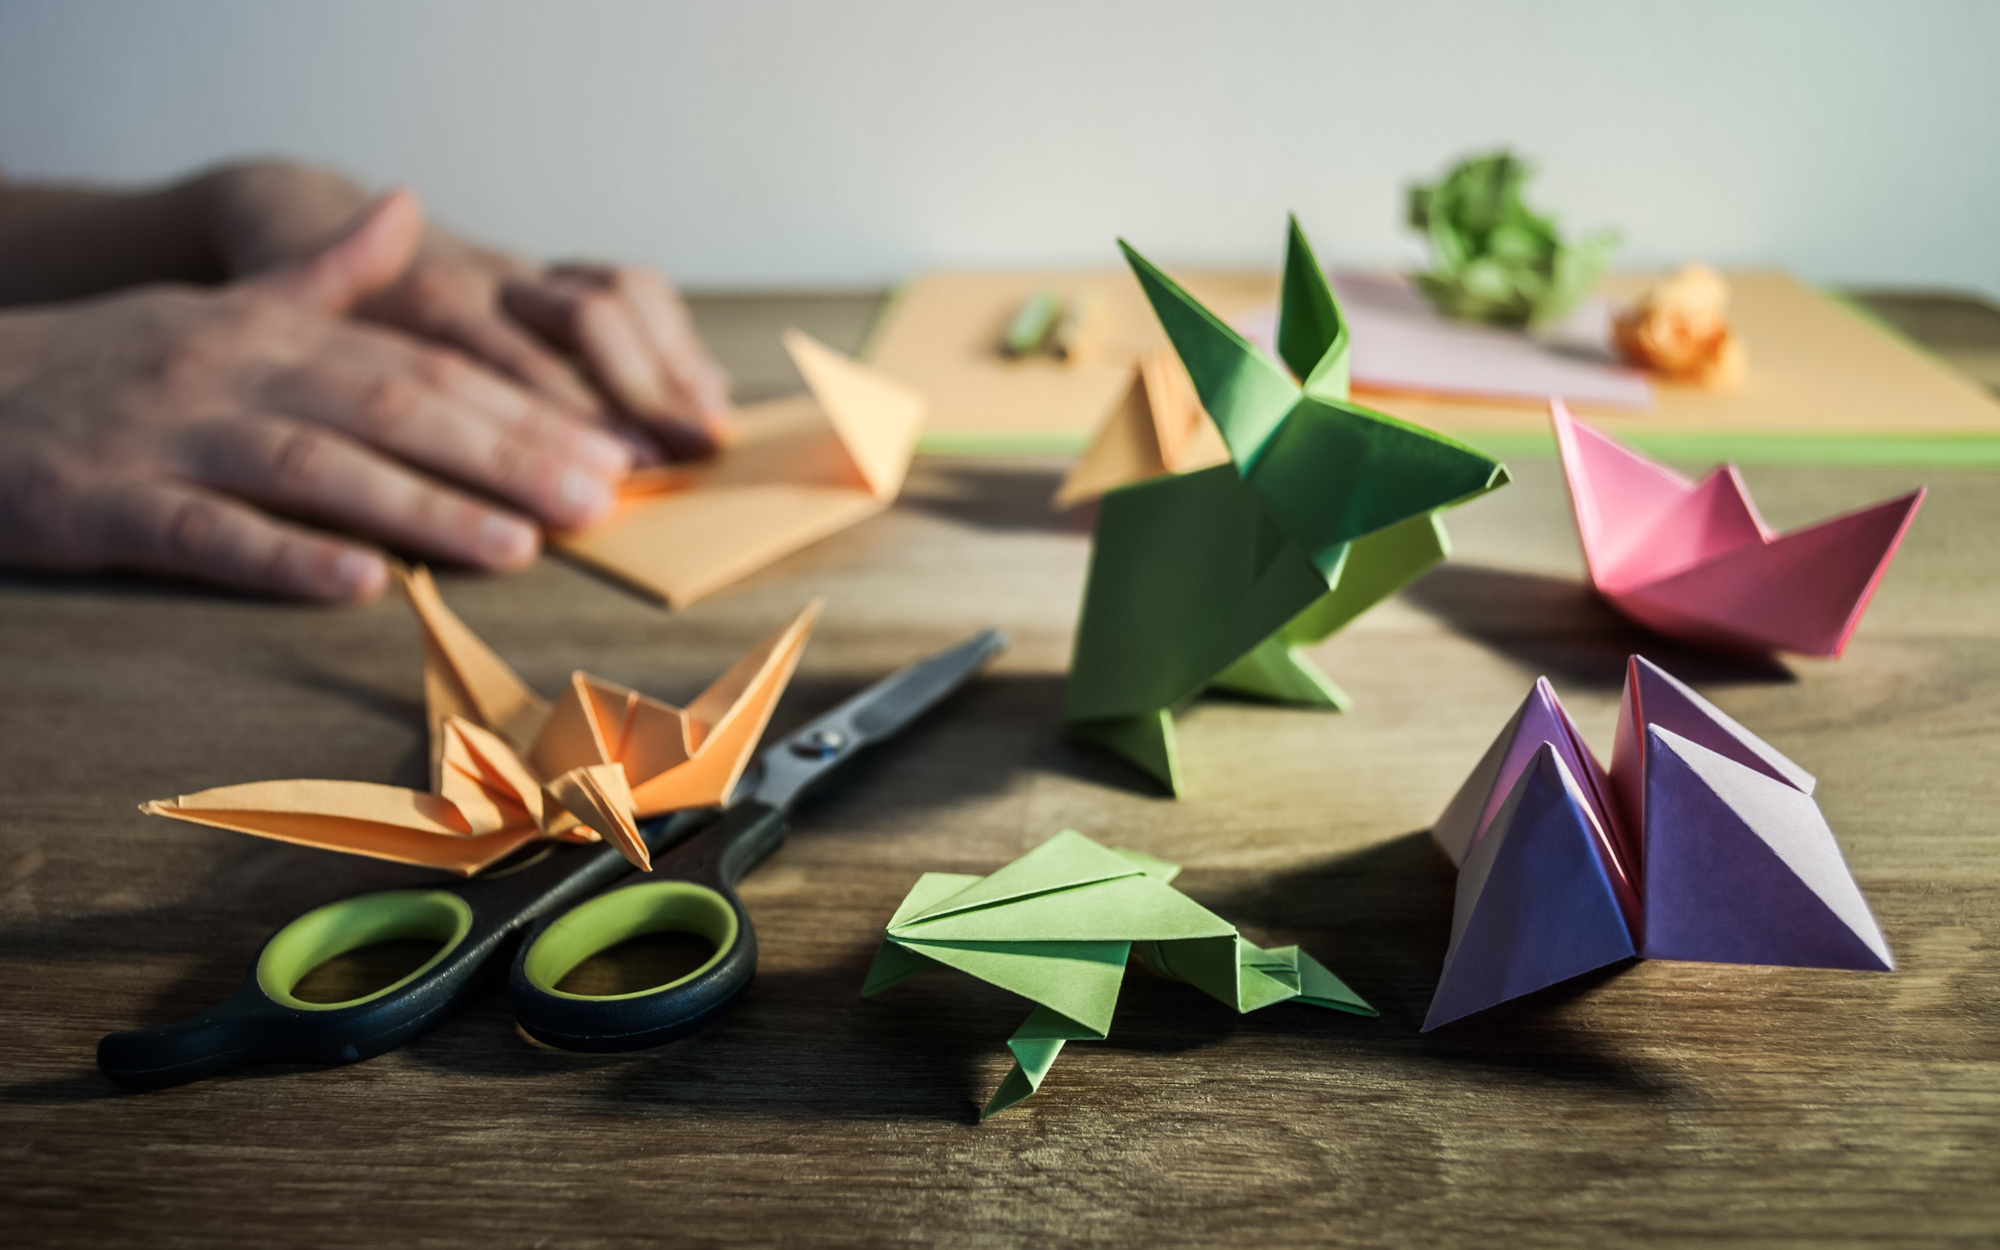 Creative Craft Ideas You Can Do With Your Kids